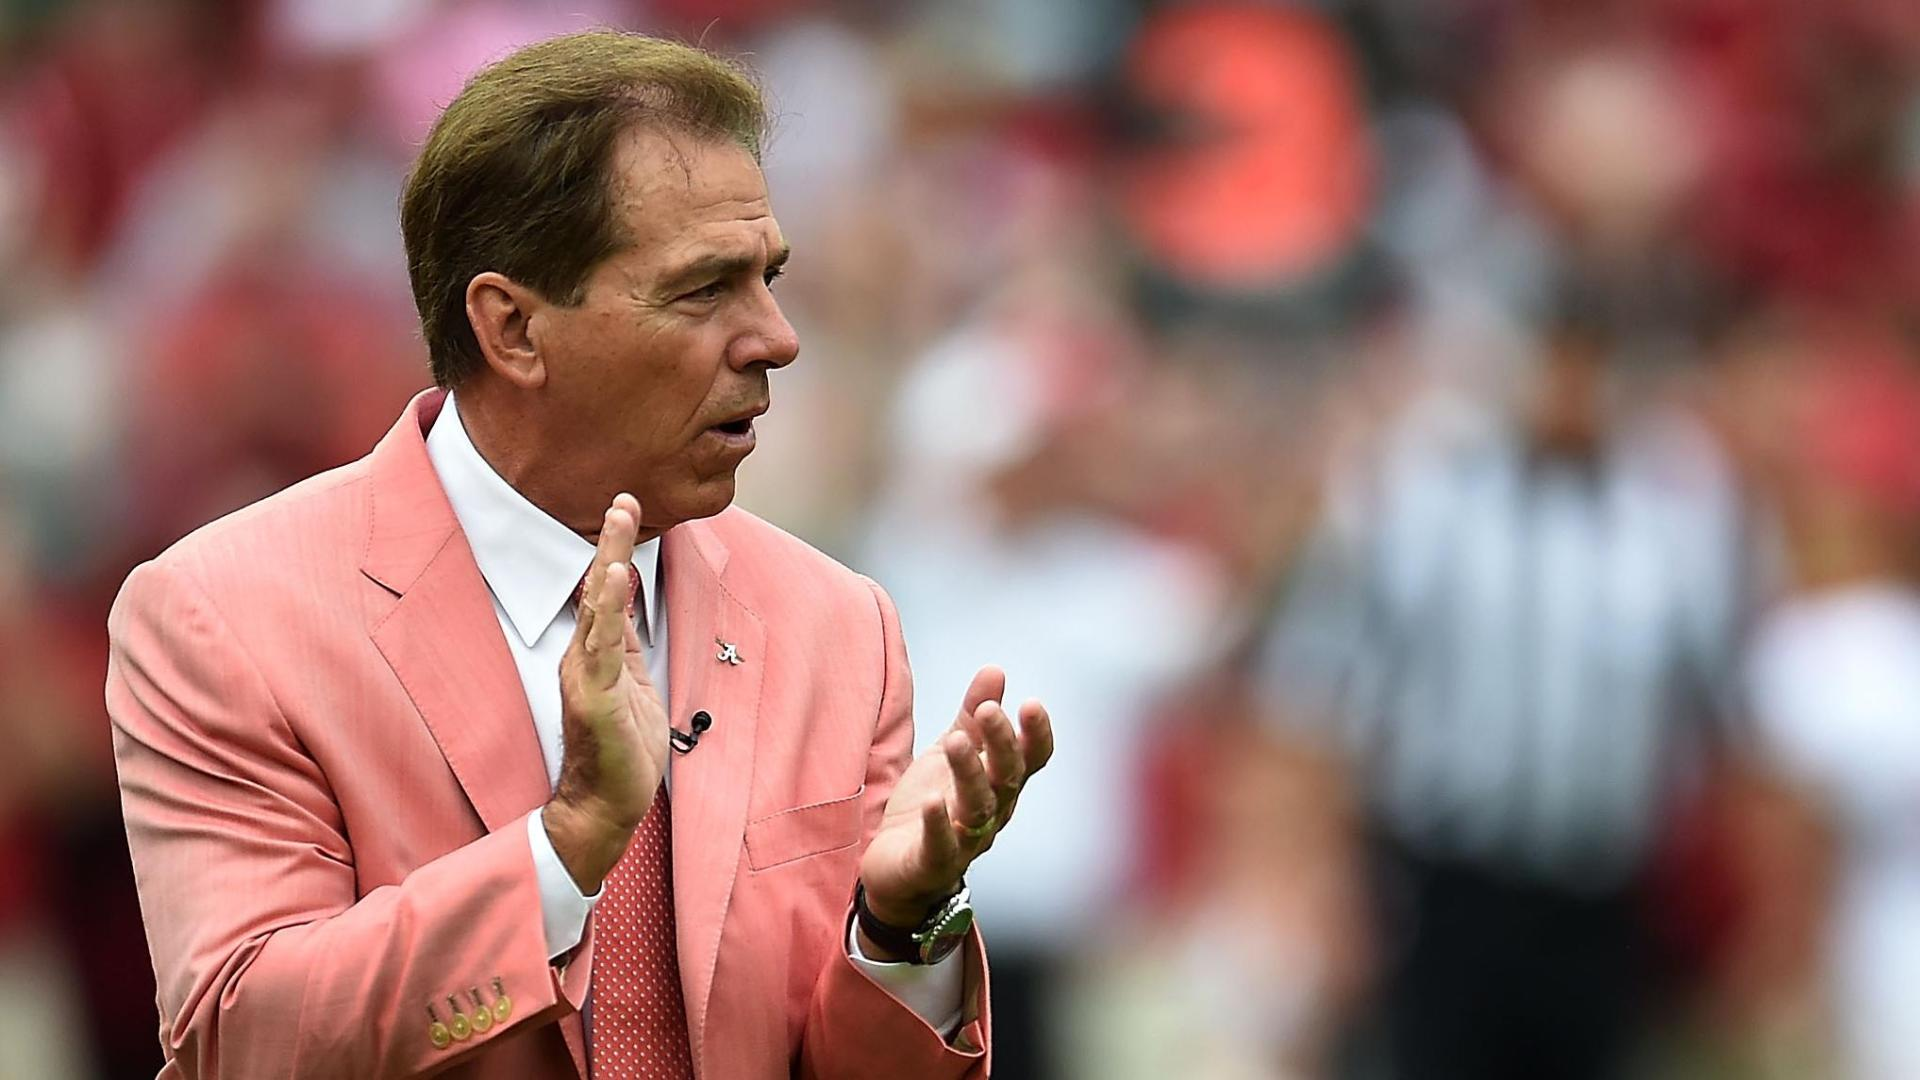 Saban: We need a global approach